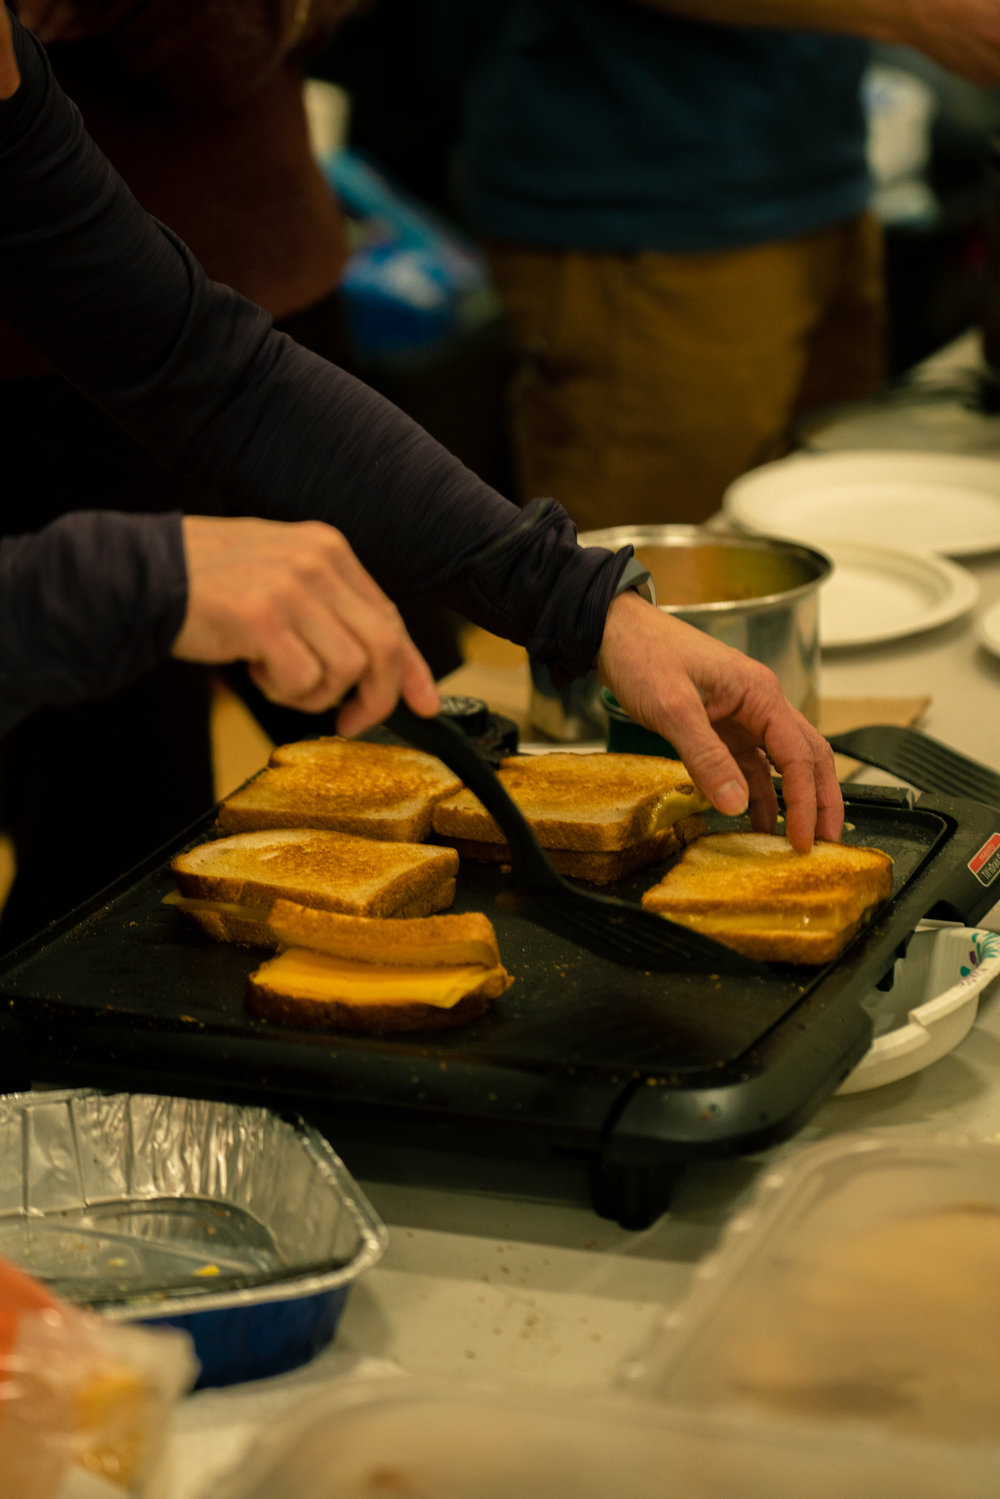 Grilled cheese after Bozeman Running Co.'s racing of the Bear near Bozeman, Montana.